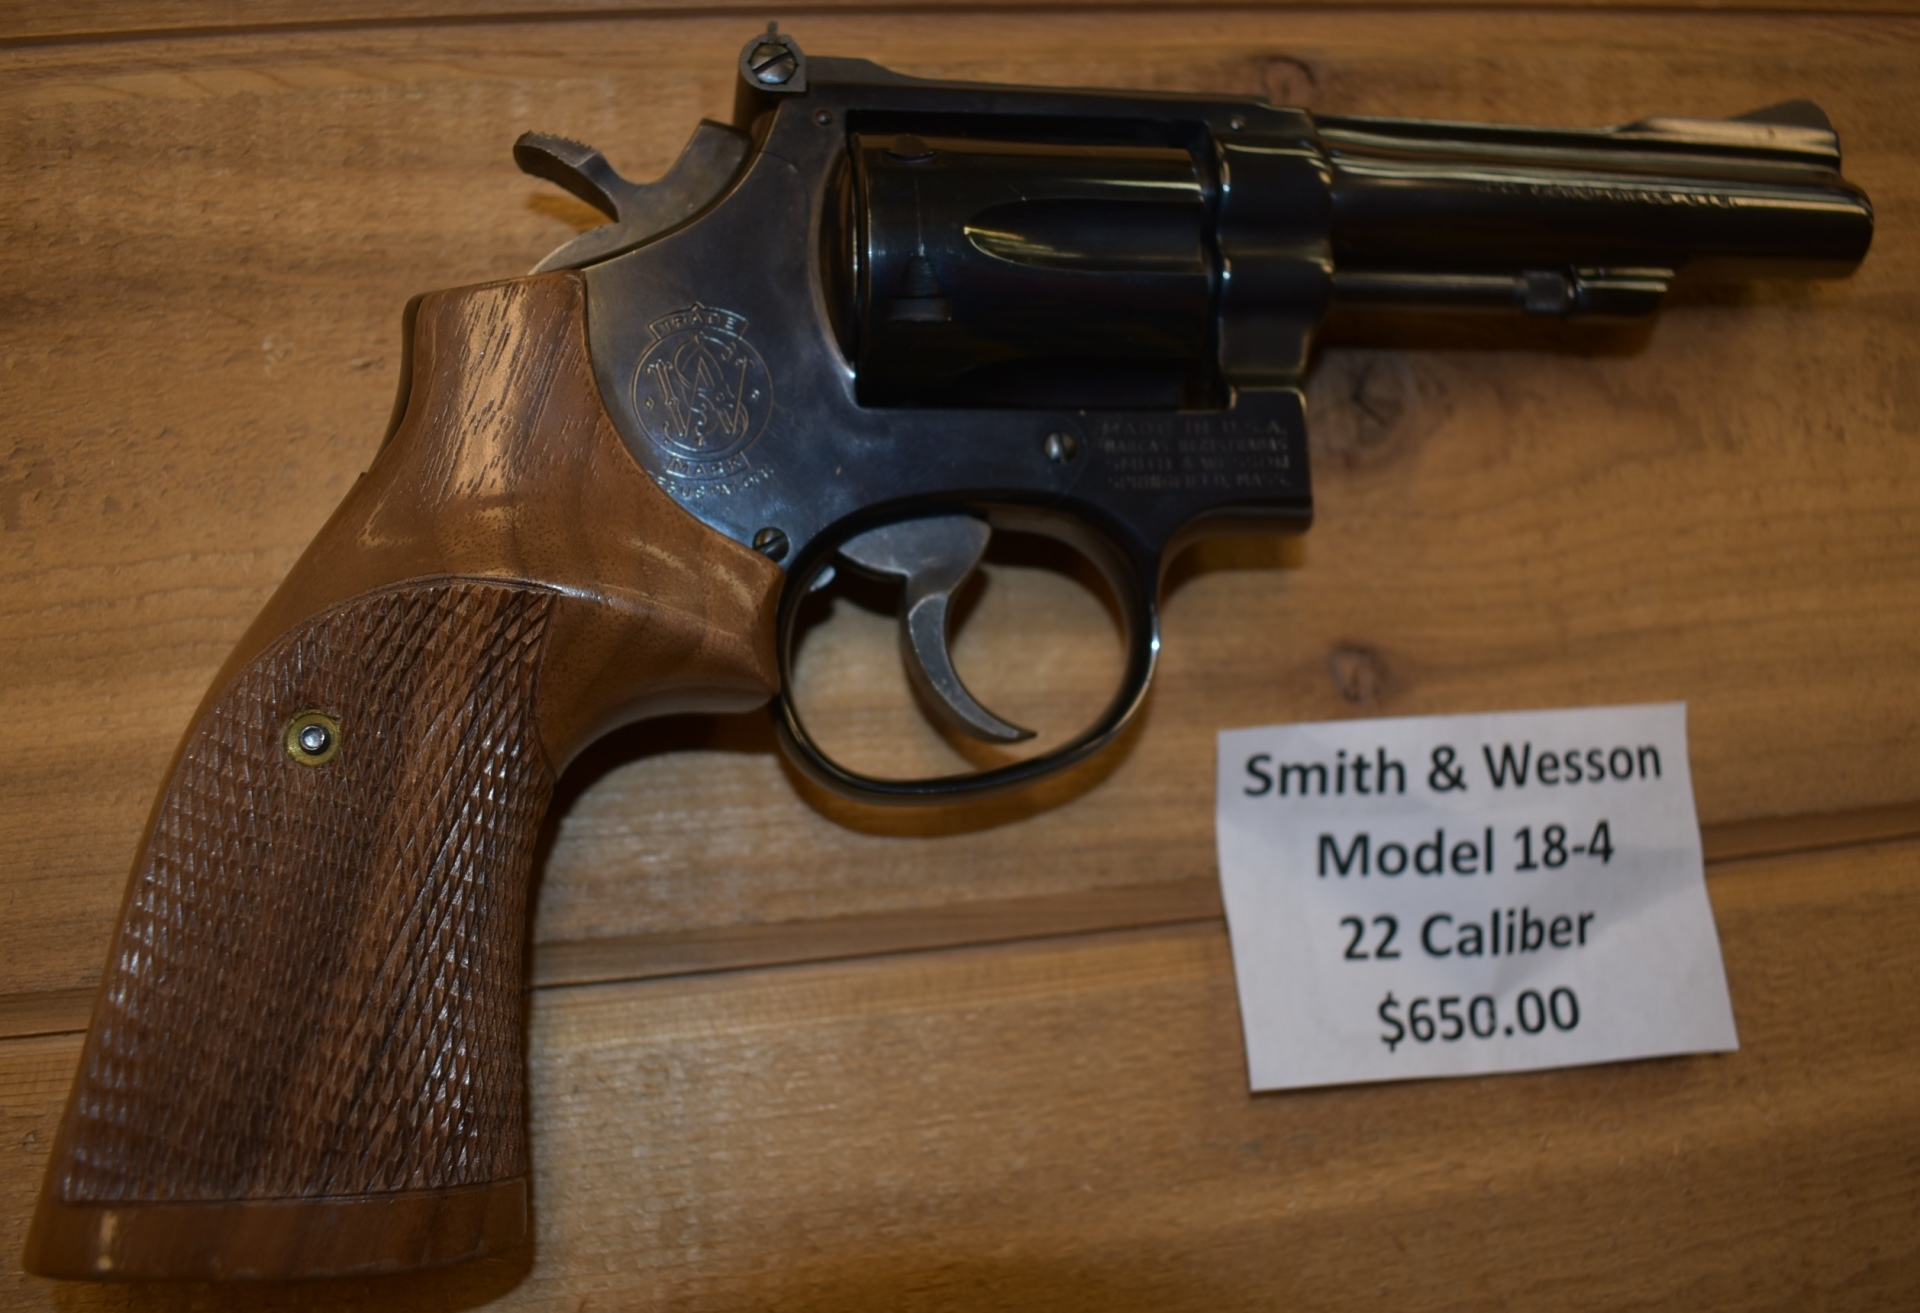 Smith & Wesson model 18-4